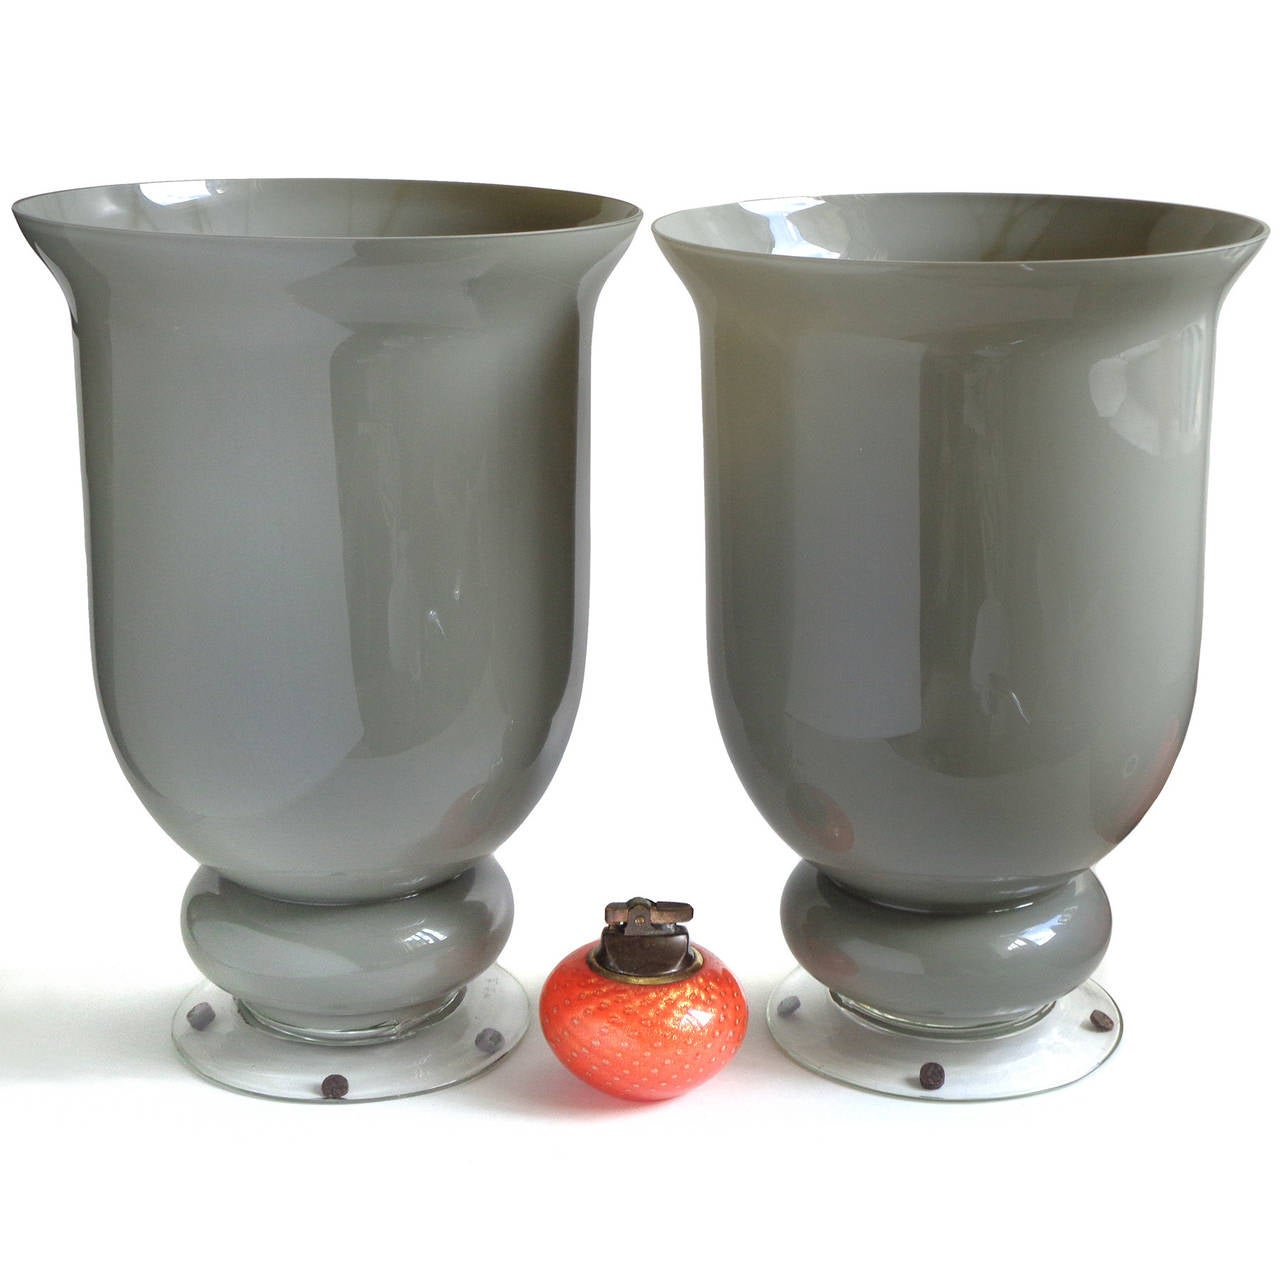 Large murano gray urn shaped italian art glass flower vases for impressive large pair of murano gray italian art glass flower vases created in the manner reviewsmspy